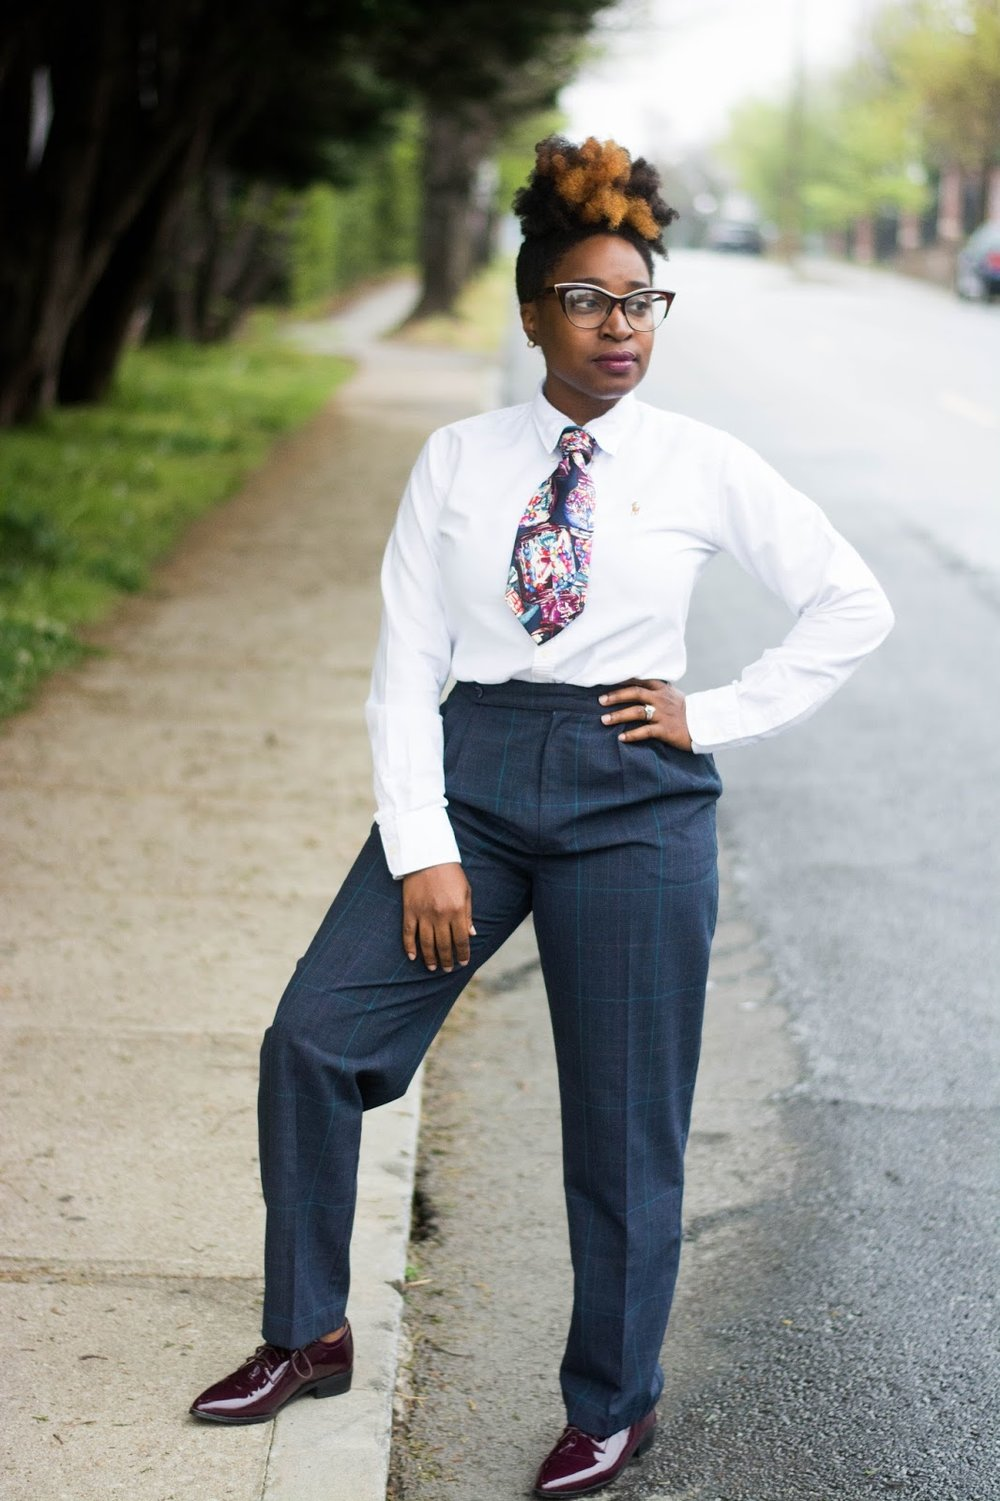 Atlanta style blogger, Style blogger, Atlanta stylist, Atlanta style influencer, Black girls rock, black girls killing it, menswear inspired, Esther Quek, Street Style, Atlanta Street Style, Fashion, Style, Black girl magic, Oxfords, Poplin Shirt, ShoeDazzle, Natural hair, Vintage fashion, Thrifted fashion